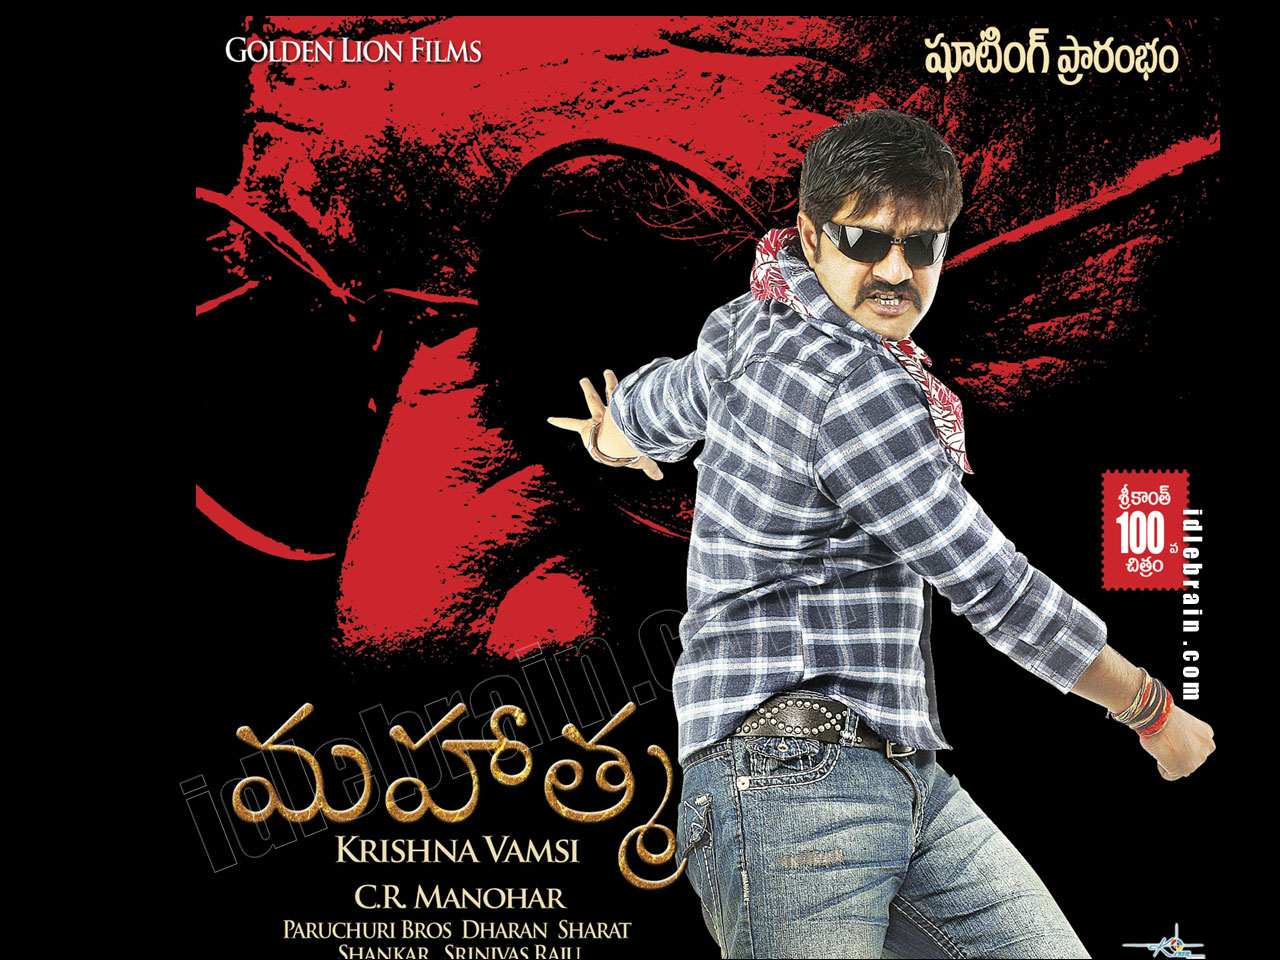 nene devudu songs